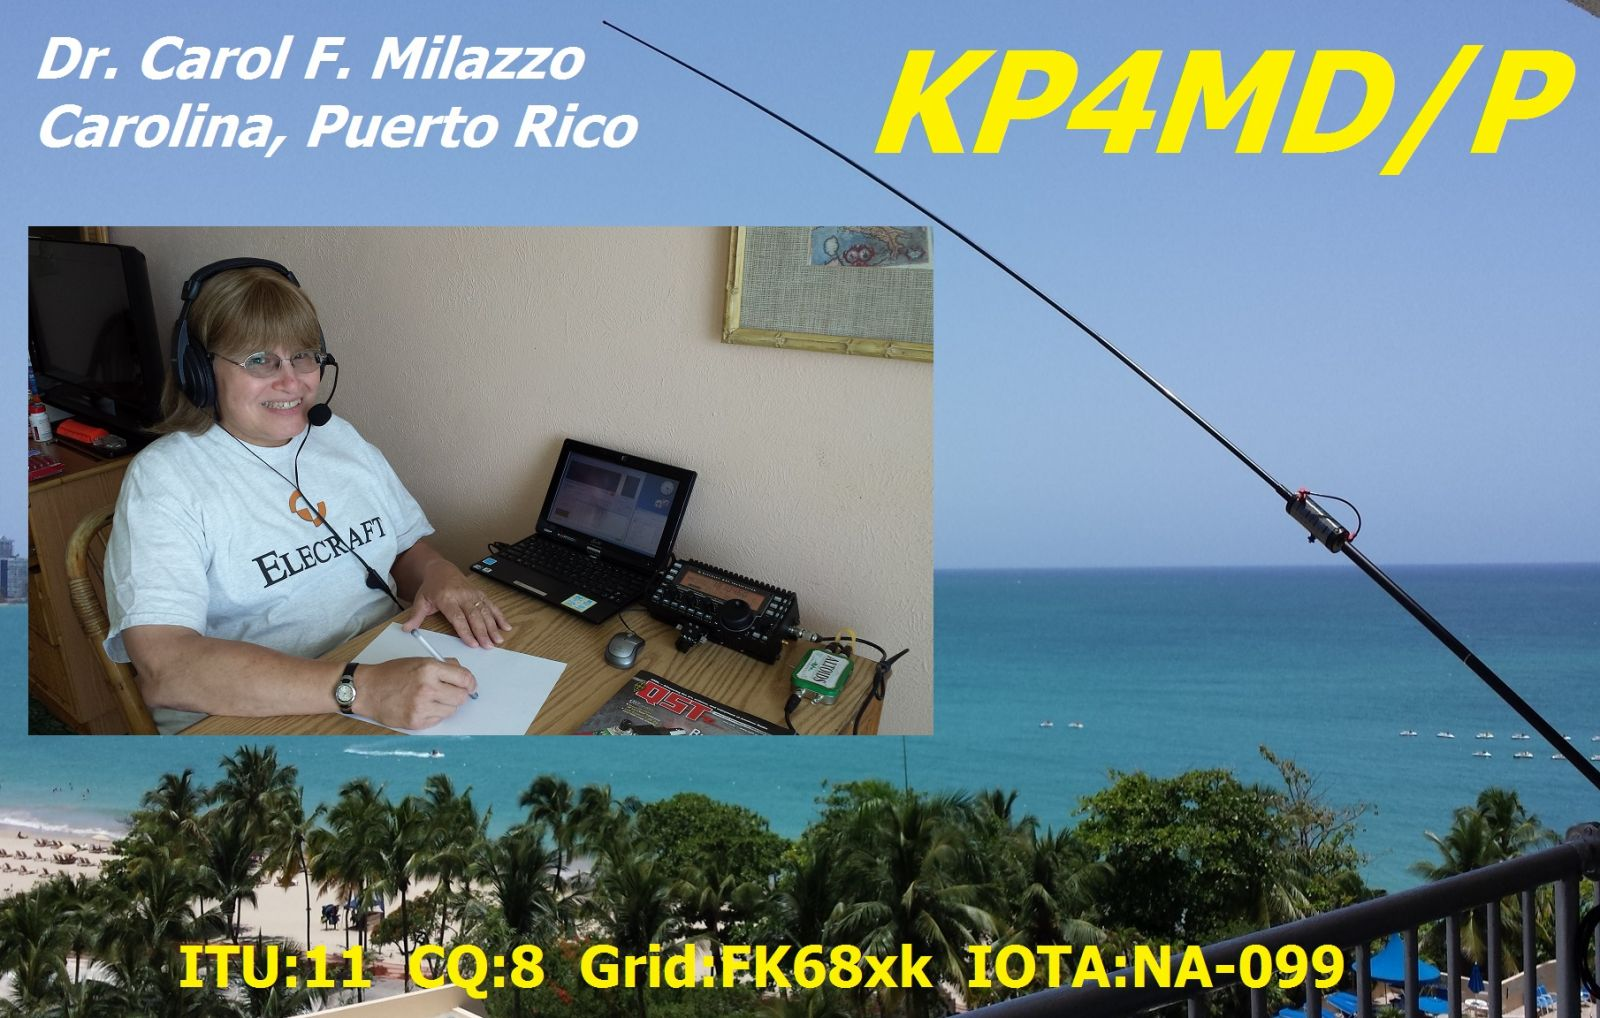 KP4MD/P Station in Puerto Rico